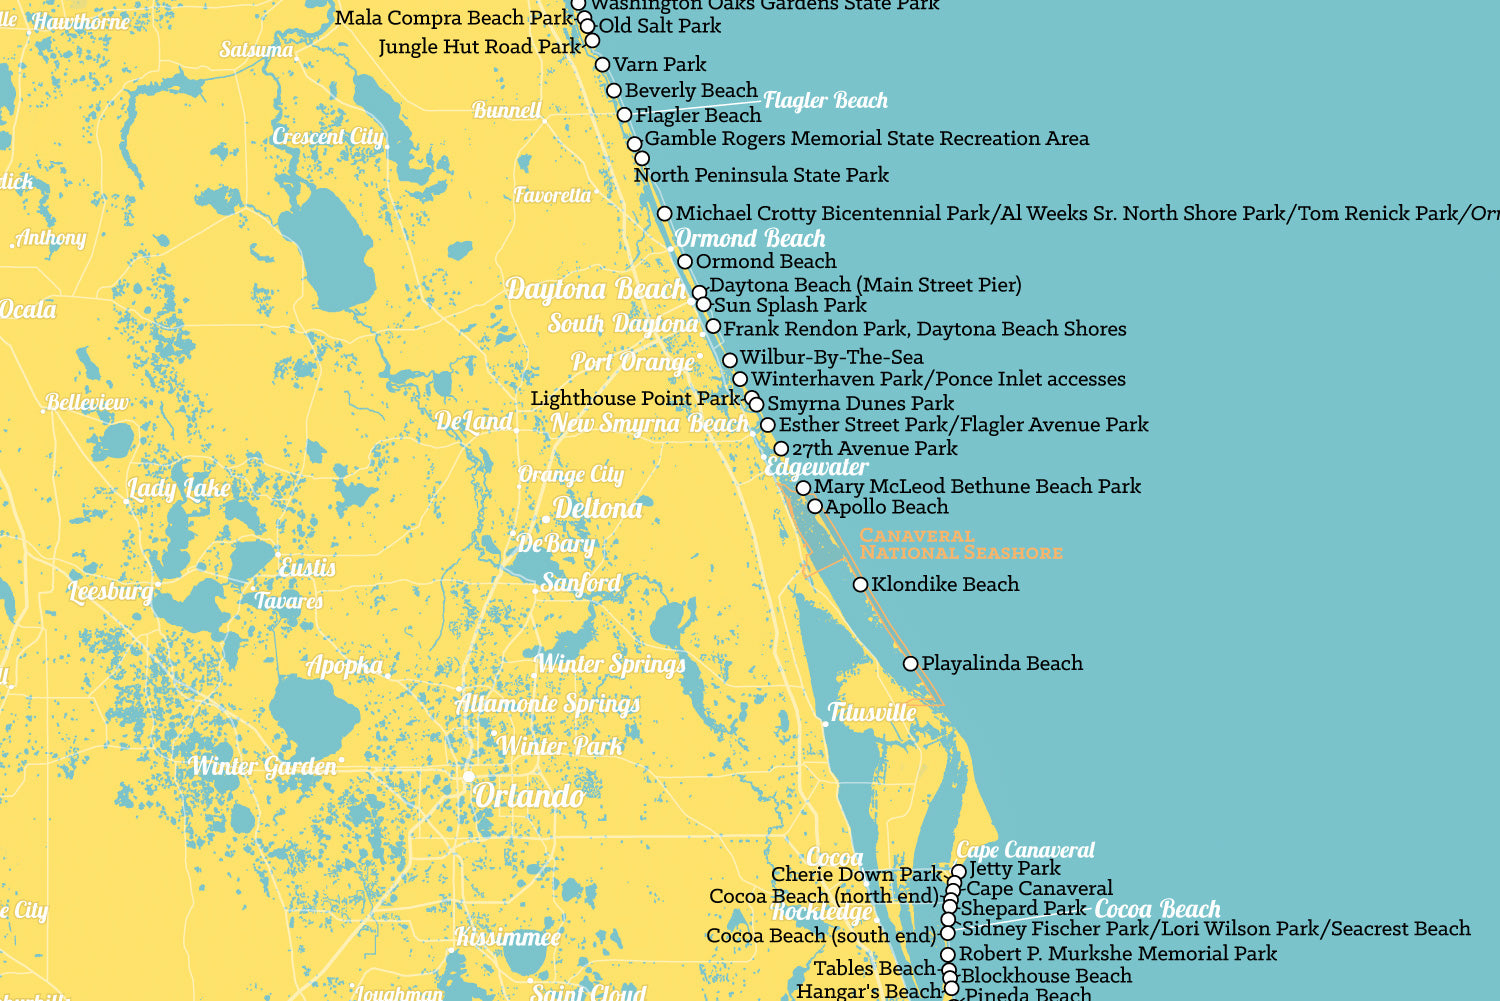 North Florida Beaches Map.Florida Beaches Map 24x36 Poster